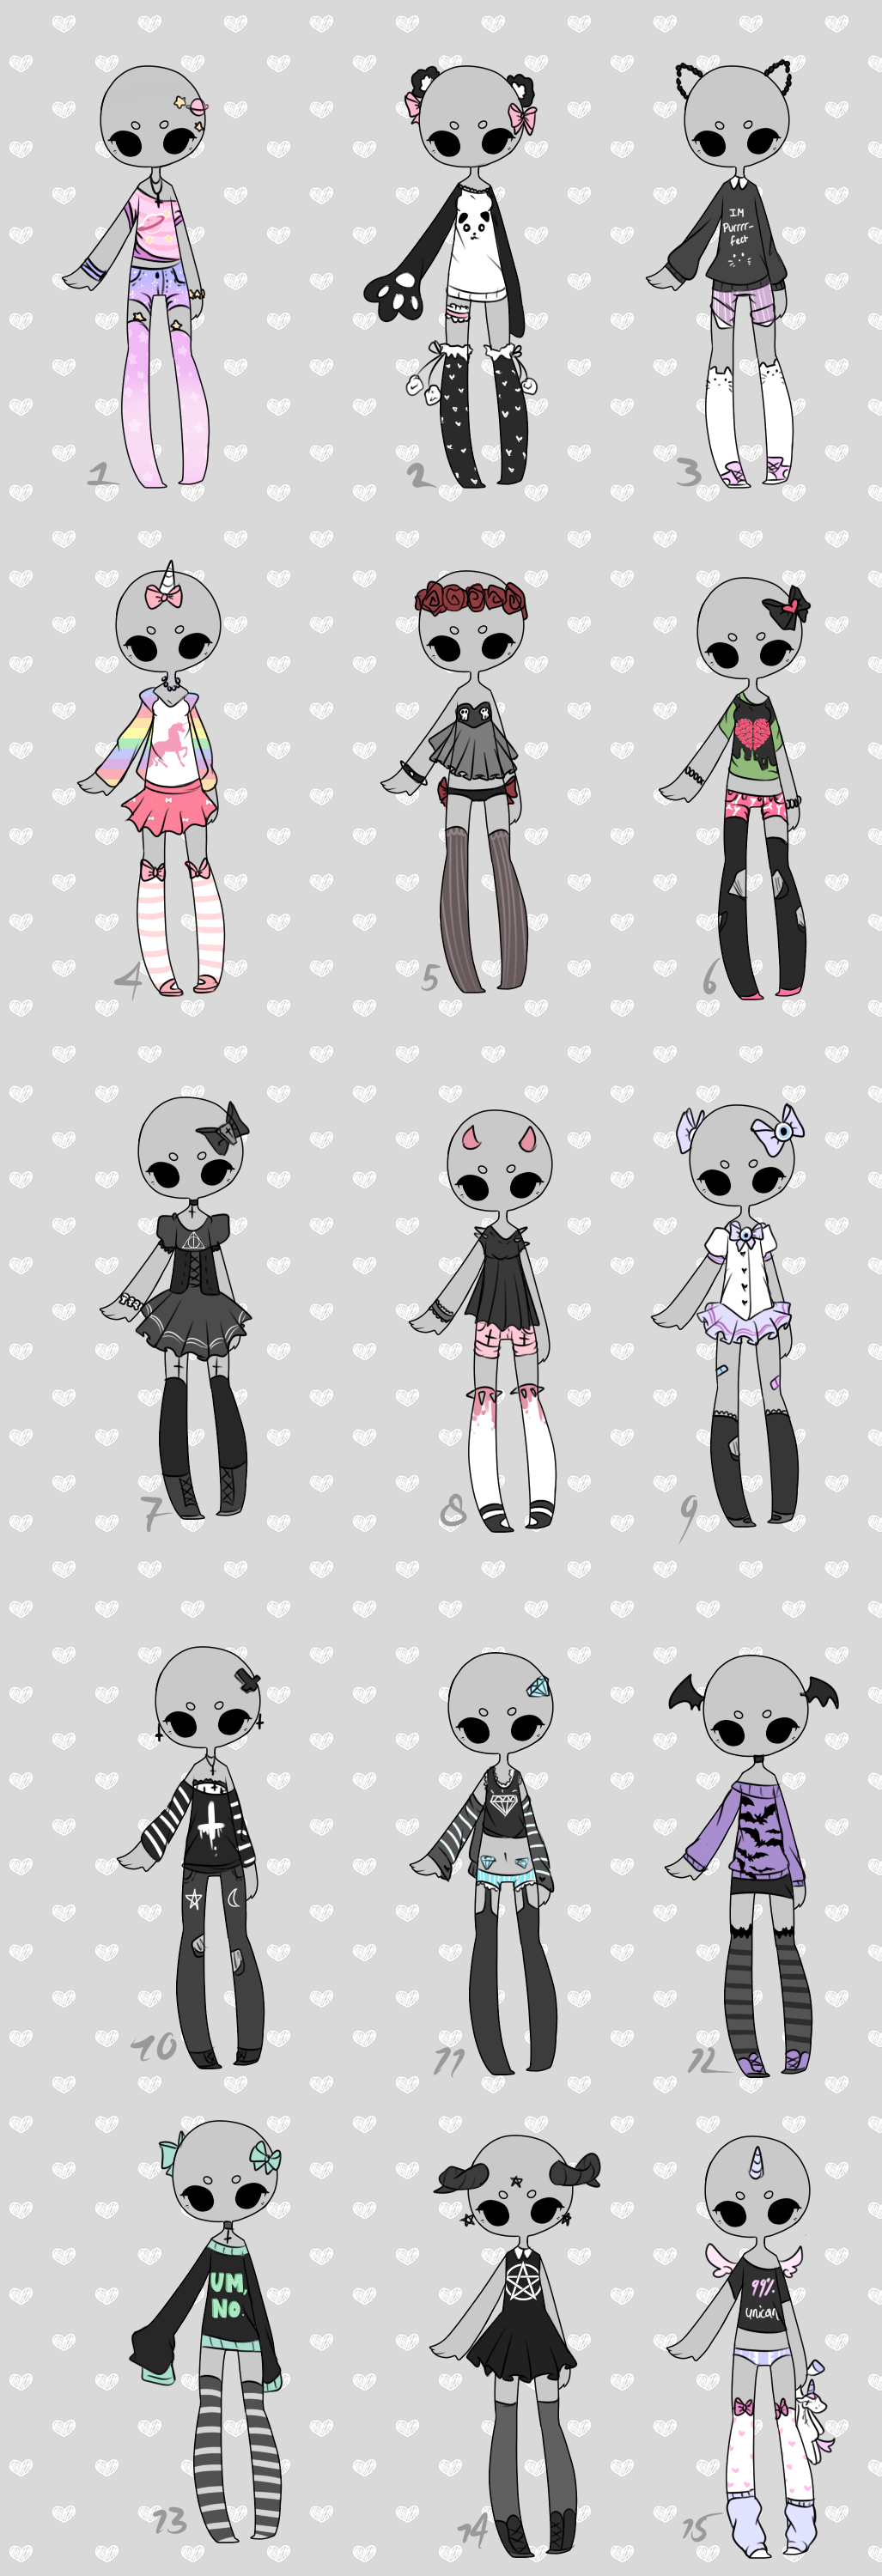 Clothing Refence Fashion Magazinesreference On Clothes: Set Price 3$ Outfit Adoptables CLOSED By KimmyPeaches